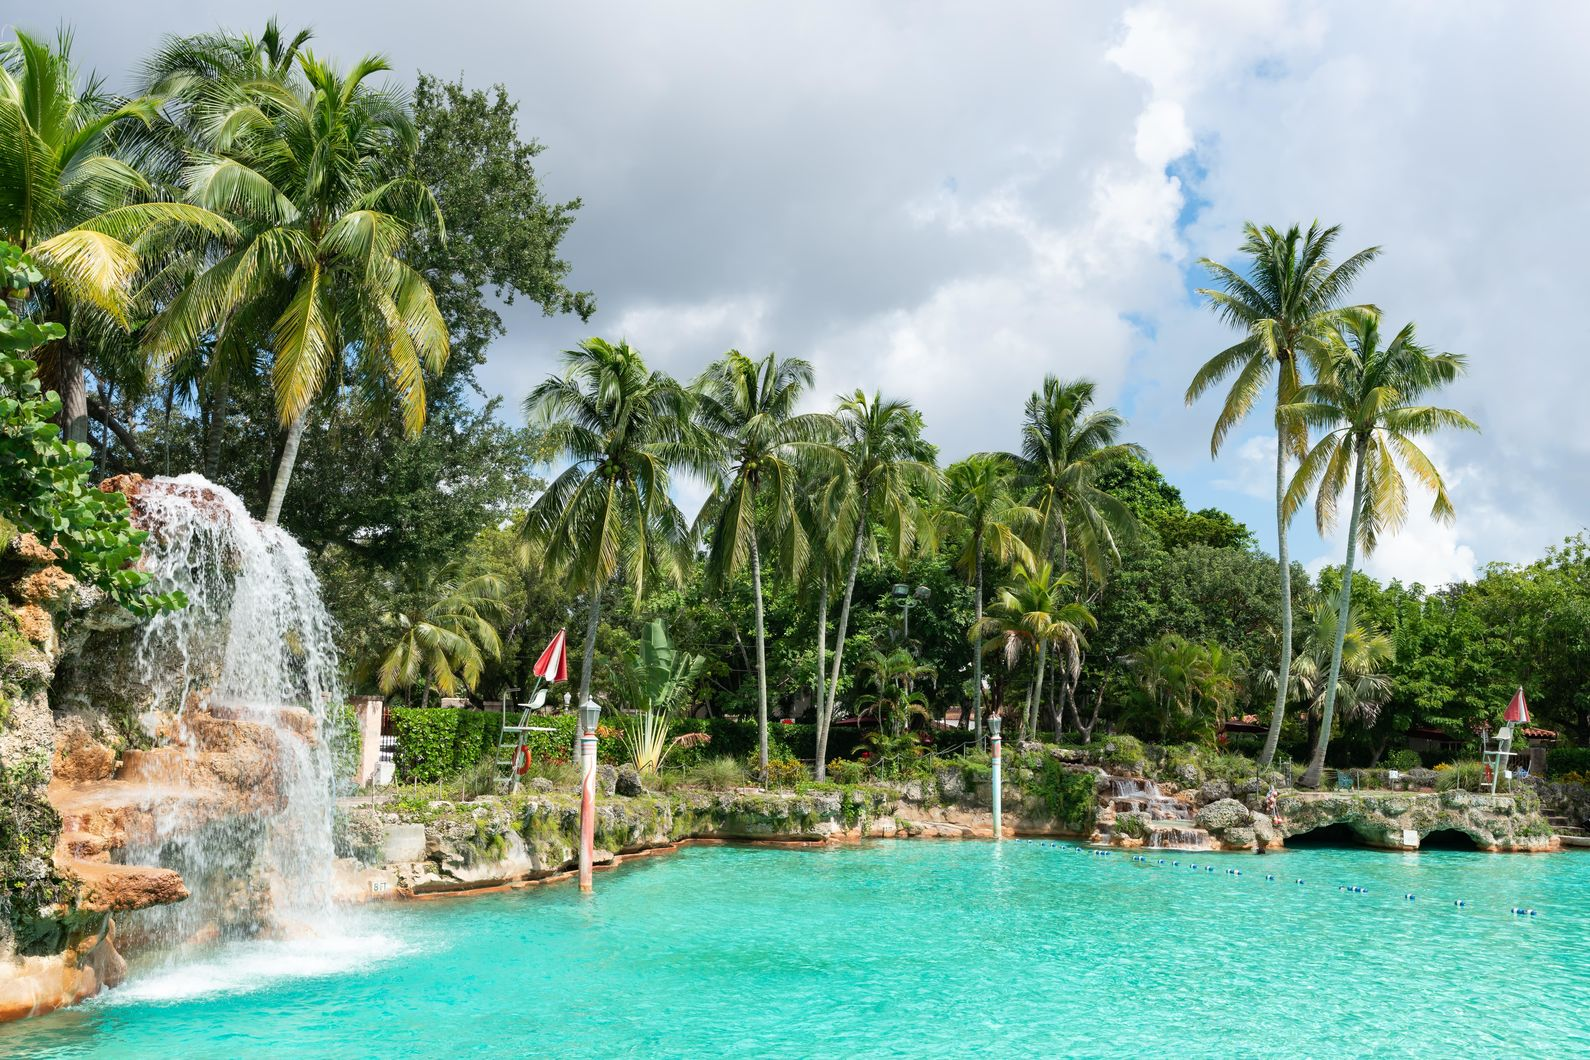 The Venetian Pool Near The Henry Apartments in Coral Gables, FL.